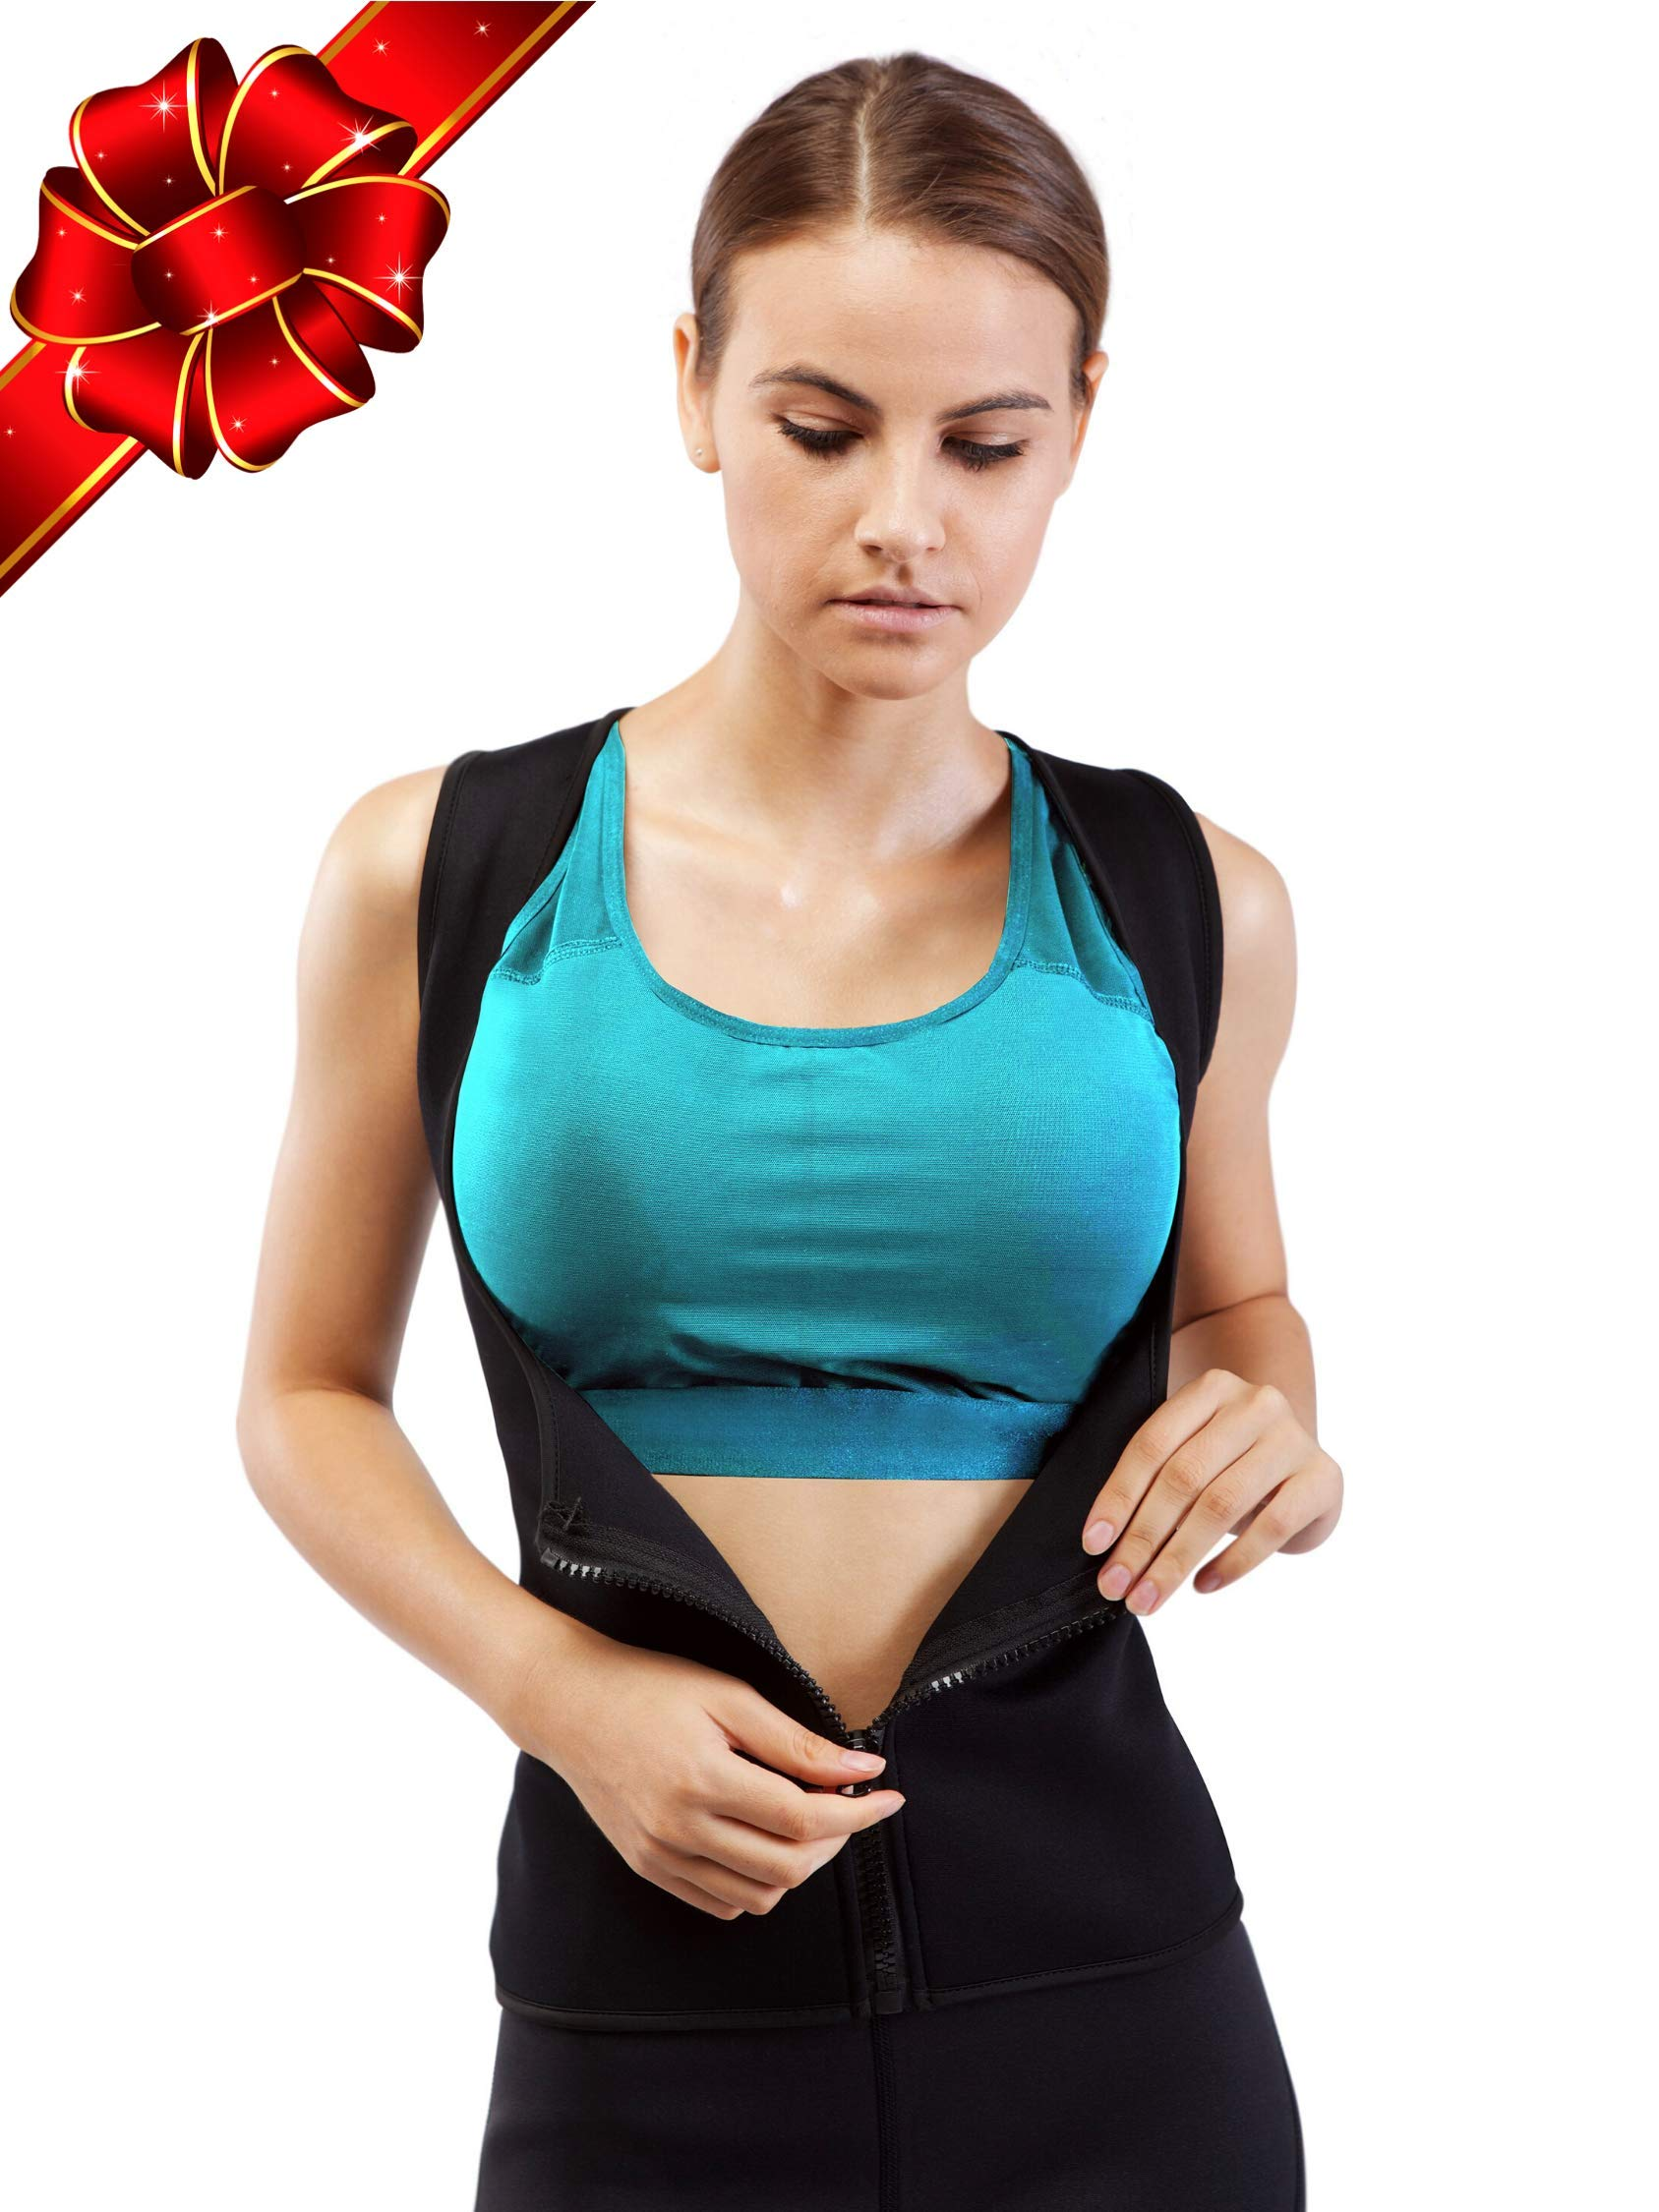 XS-6XL Sweat Vest for Women - Get Faster Result /& Boost Your Workout Motivation - Weightless Neoprene Sauna Shirt Designed in The USA